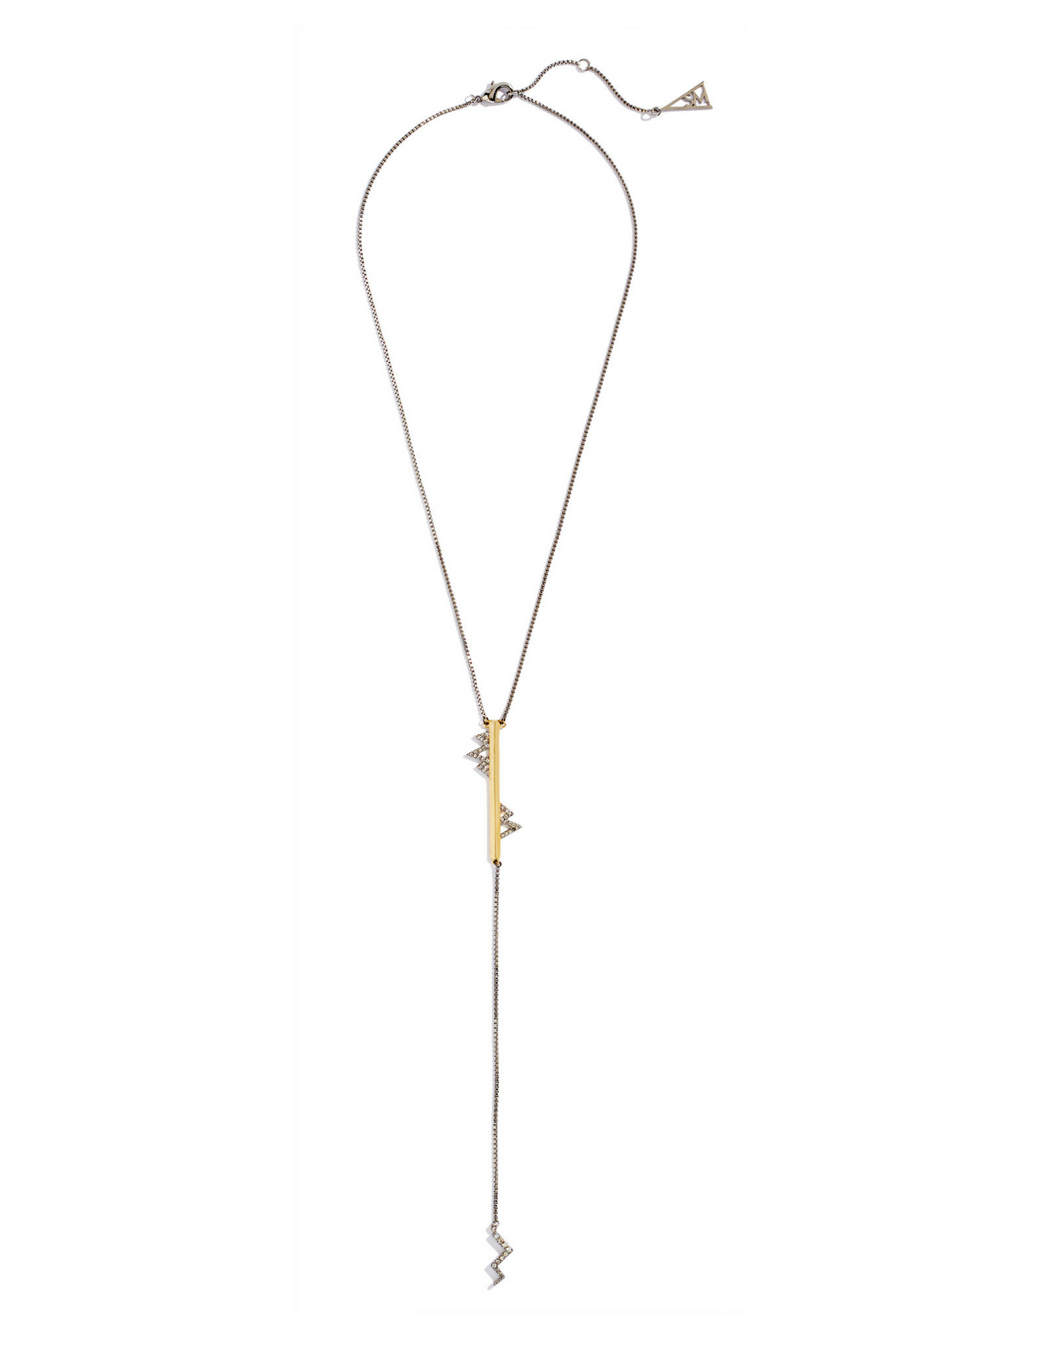 Spark Lariat by Sarah Magid Jewelry